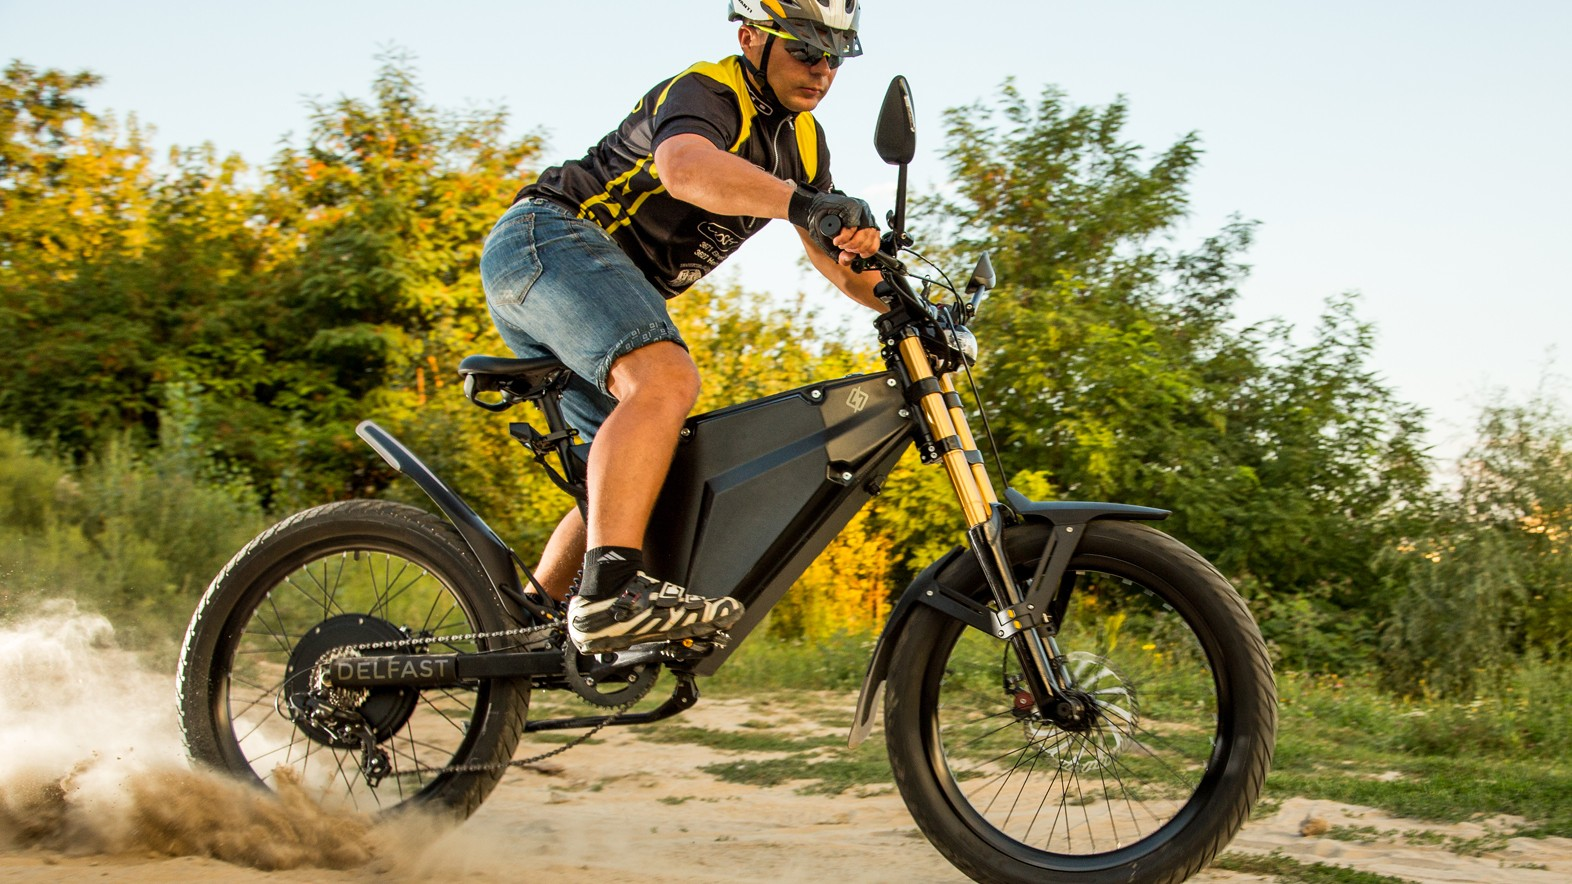 Delfast's electric bike has a claimed 380km (236m) range